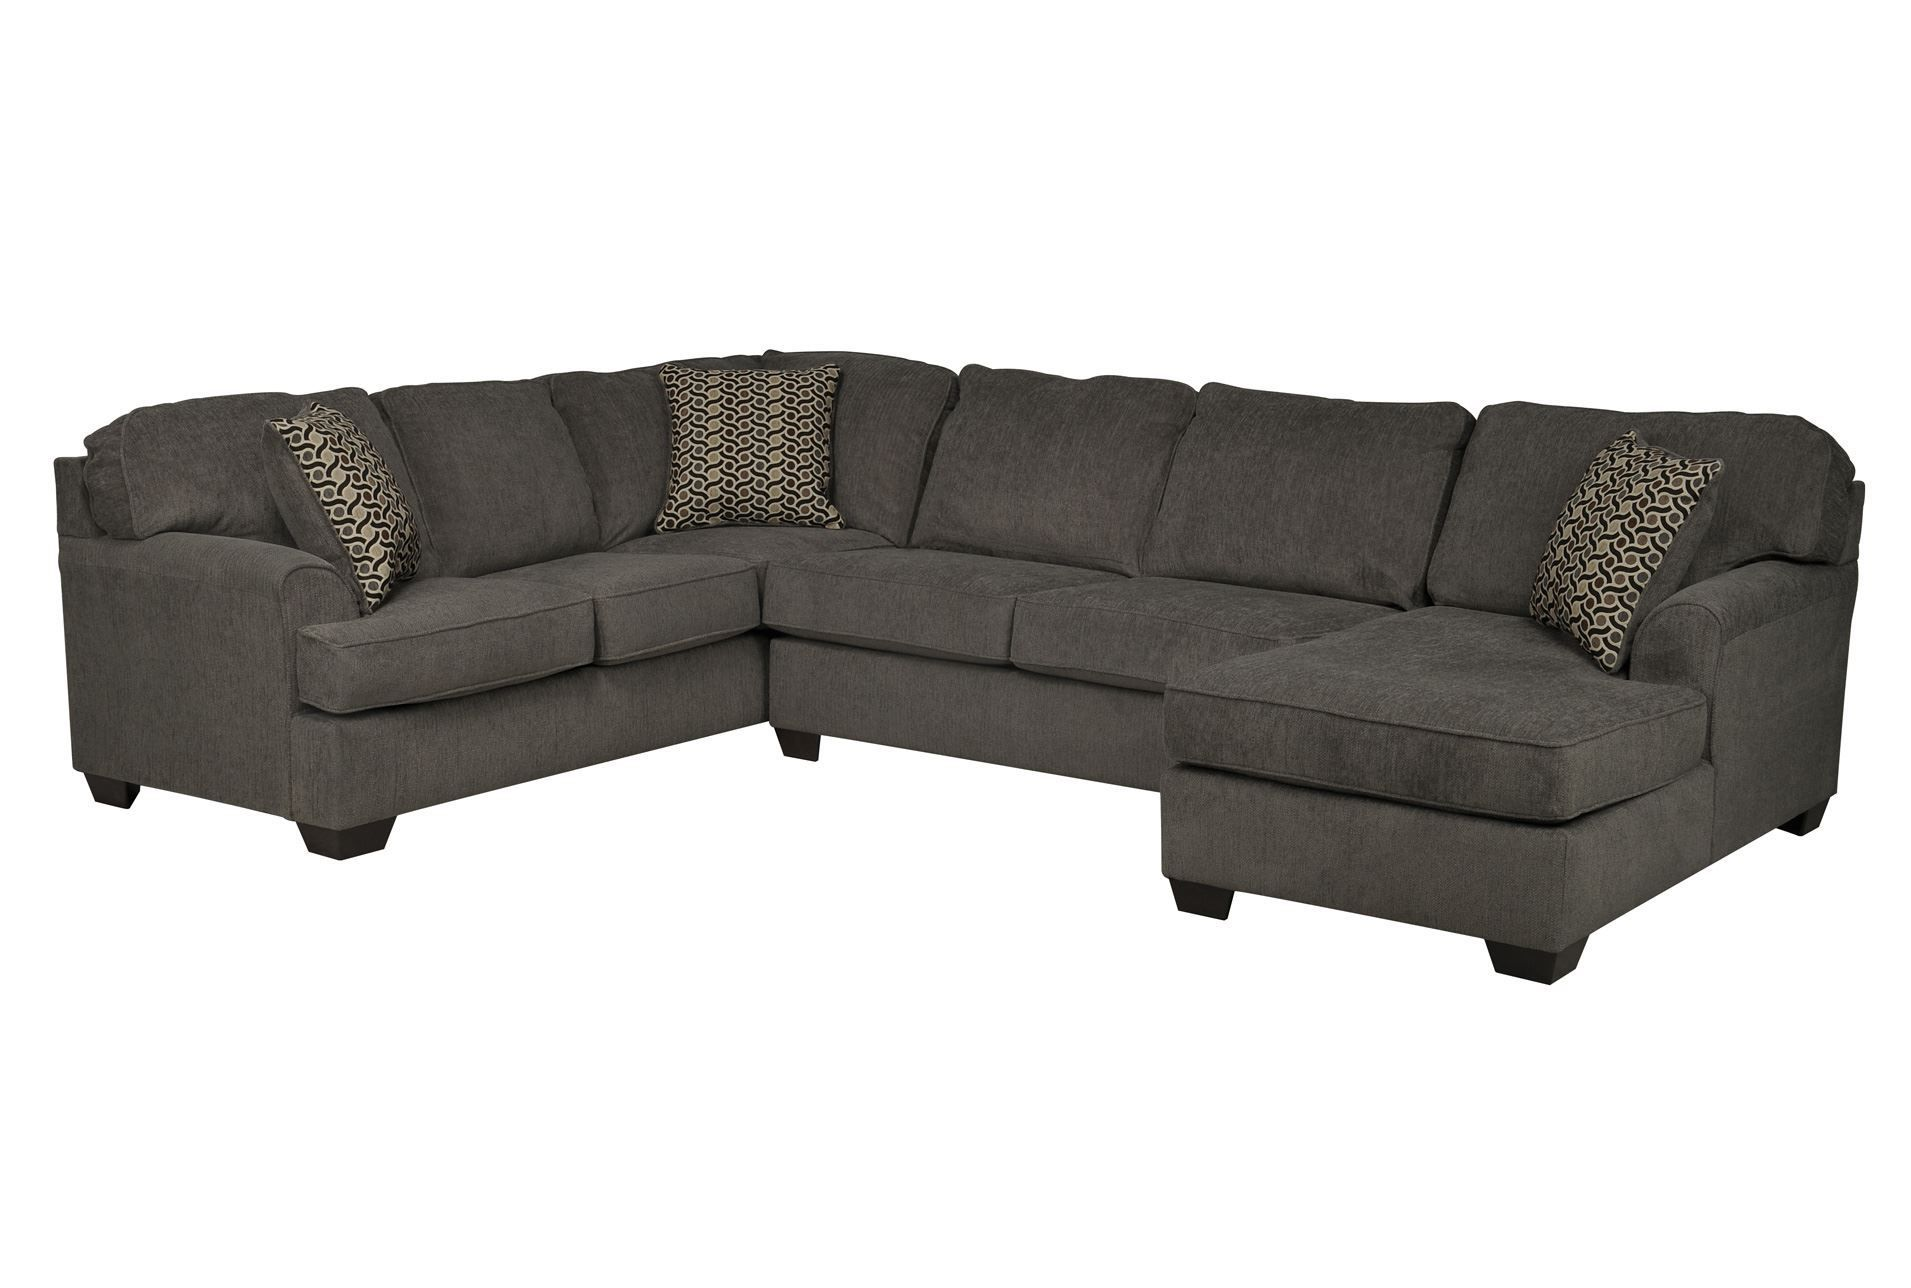 Best Loric Smoke 3 Piece Sectional W Raf Chaise 795 At Living 400 x 300